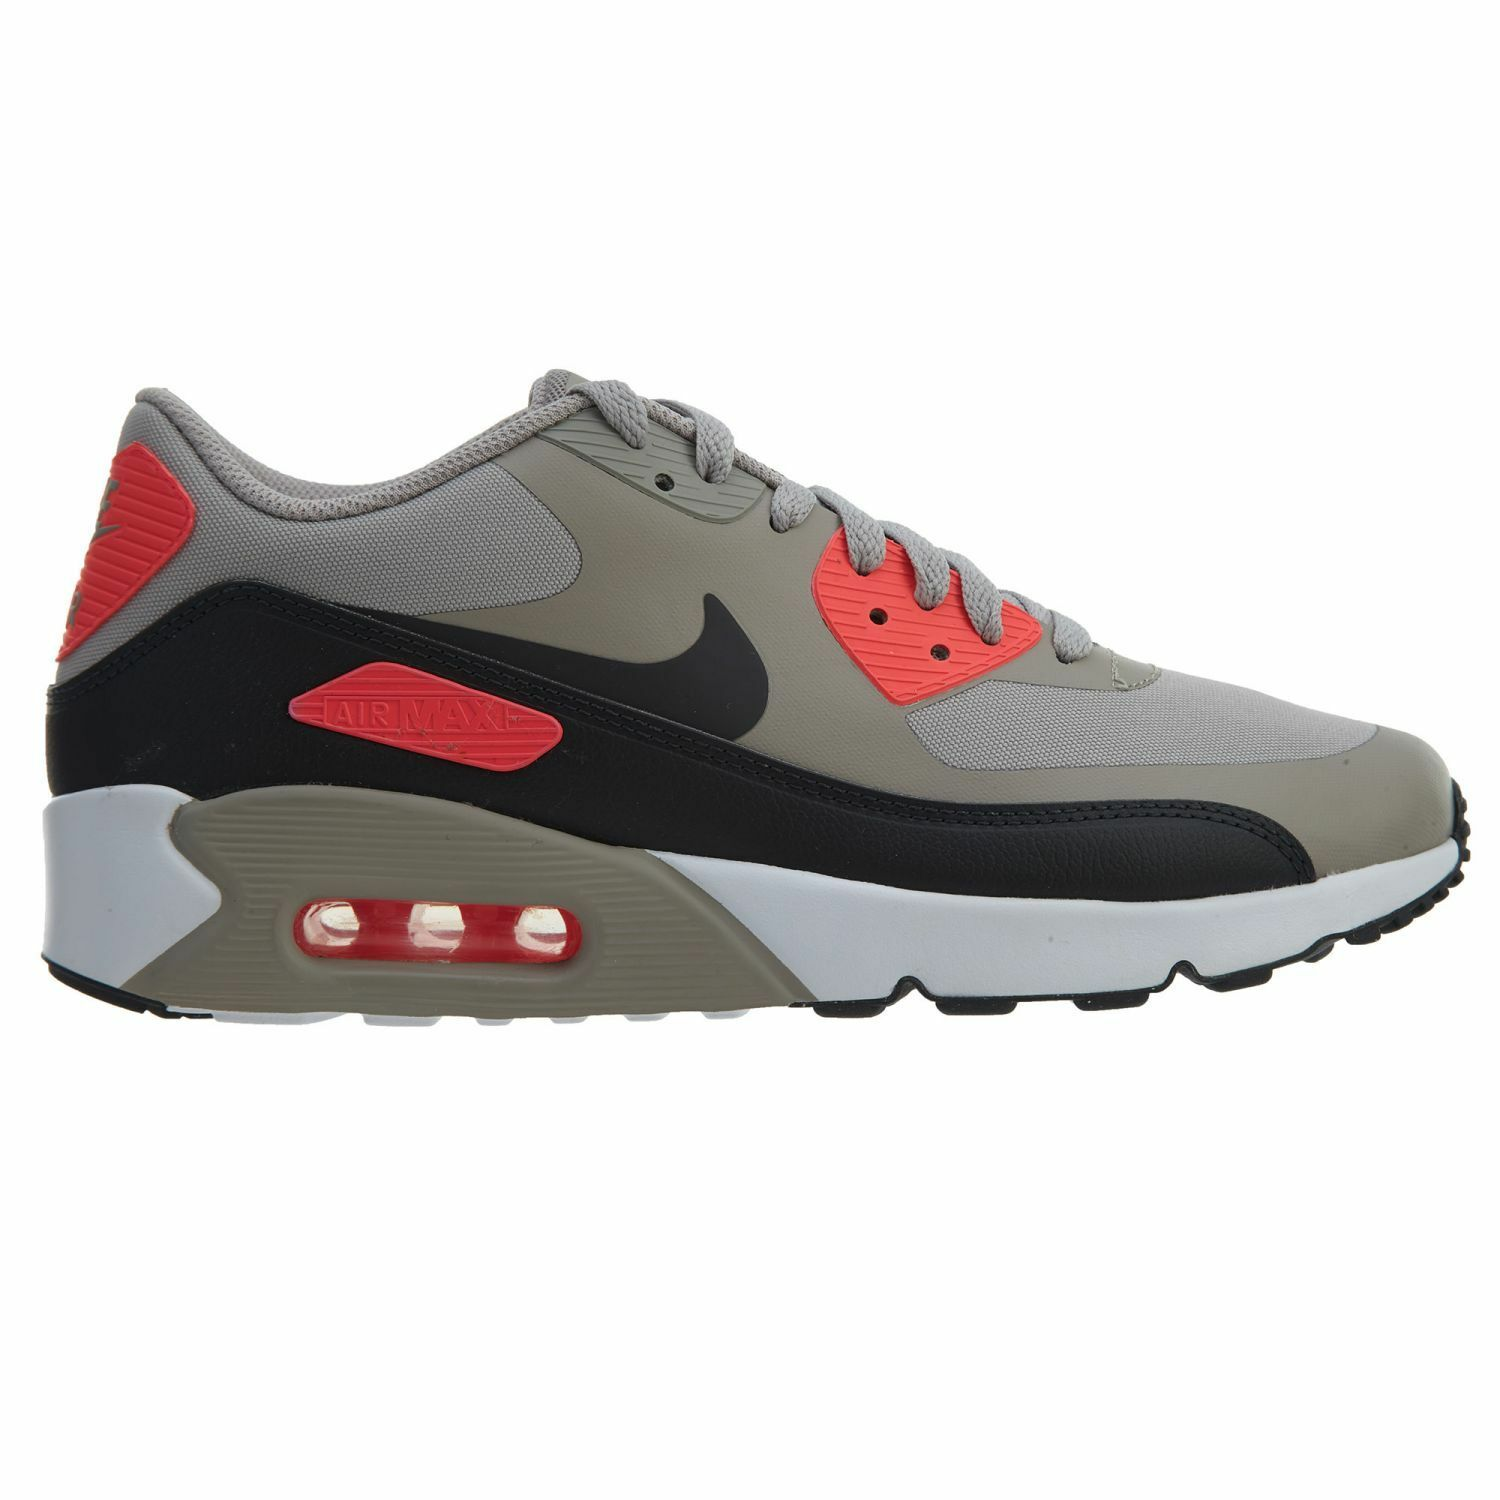 Nike Air Max 90 Ultra 2.0 Essential Mens 875695-010 Cobblestone Shoes Comfortable Cheap women's shoes women's shoes